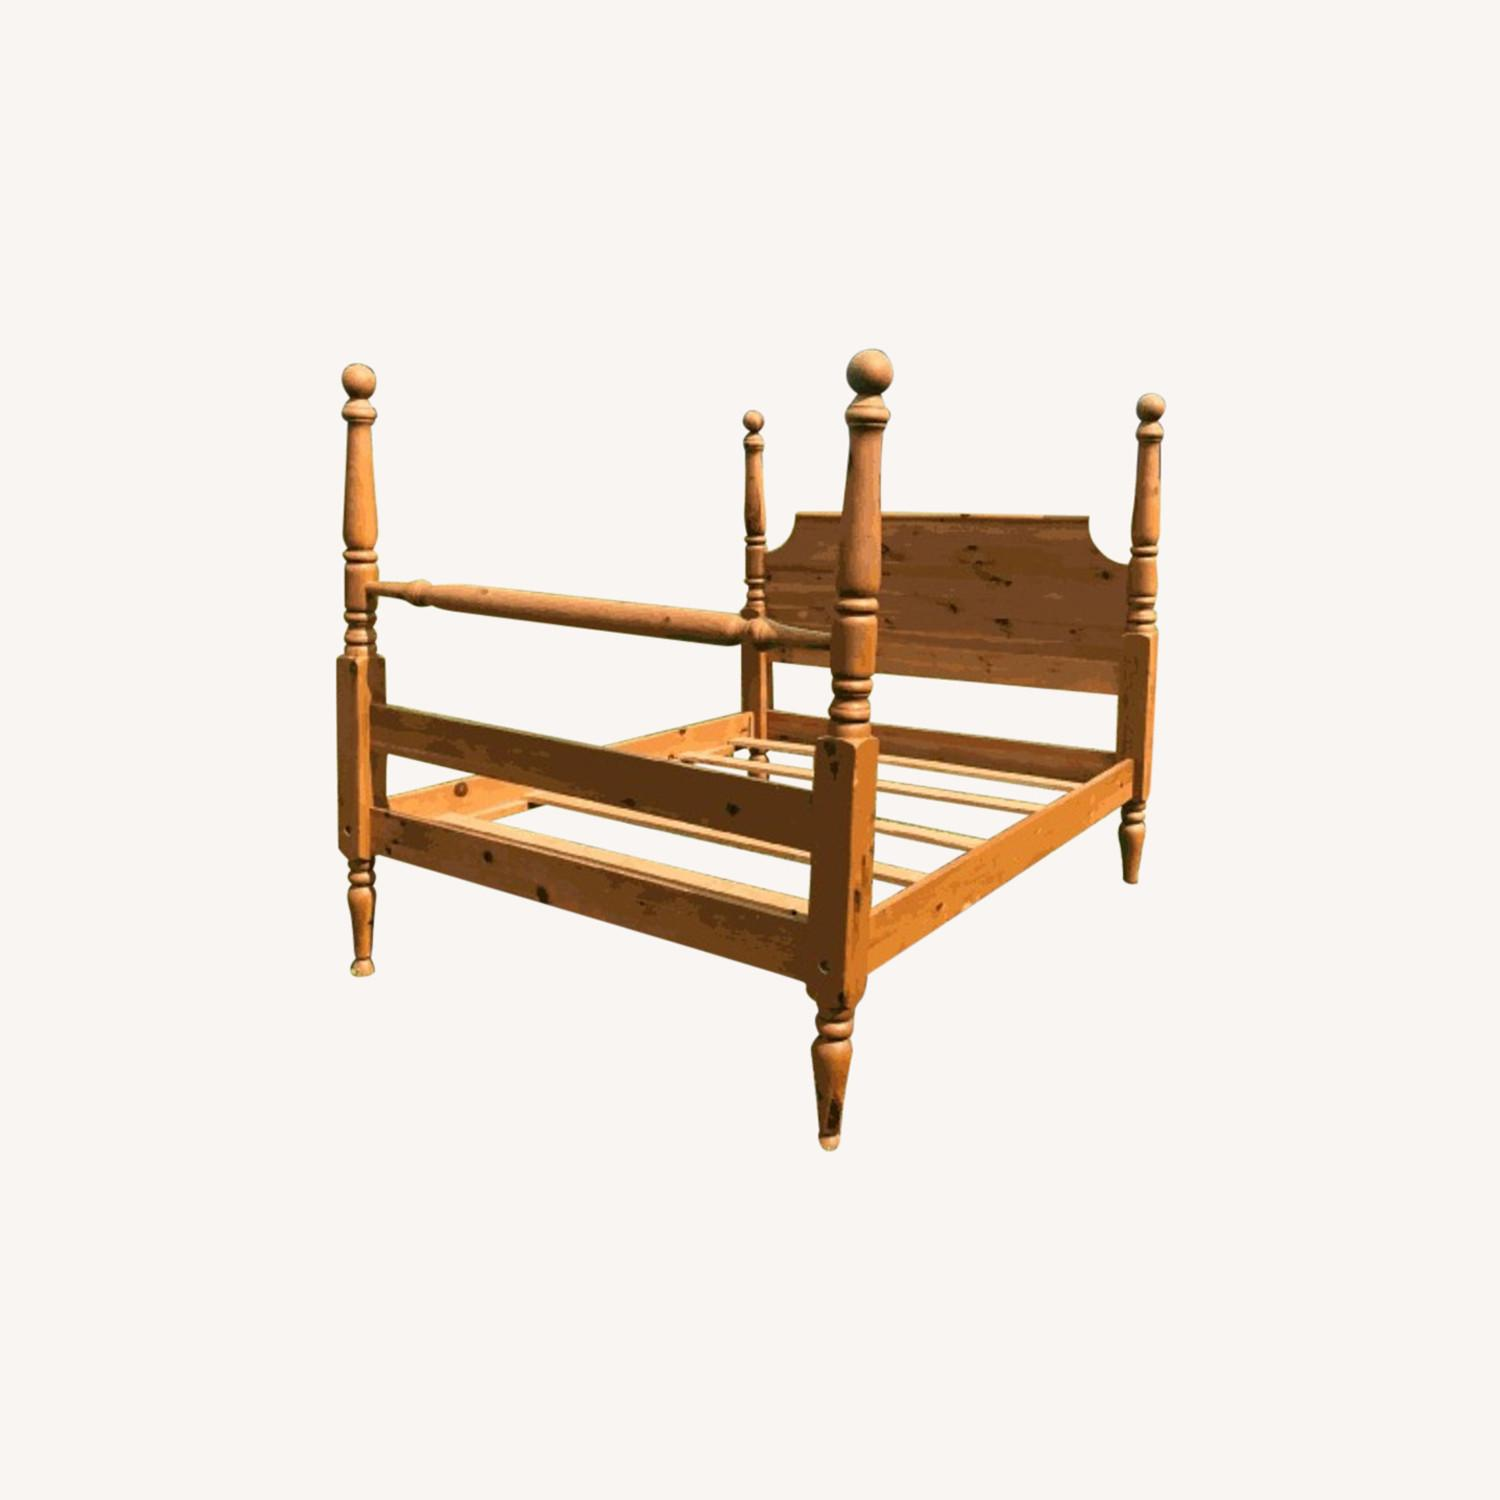 Restoration Hardware Four-poster Queen Bed - image-0